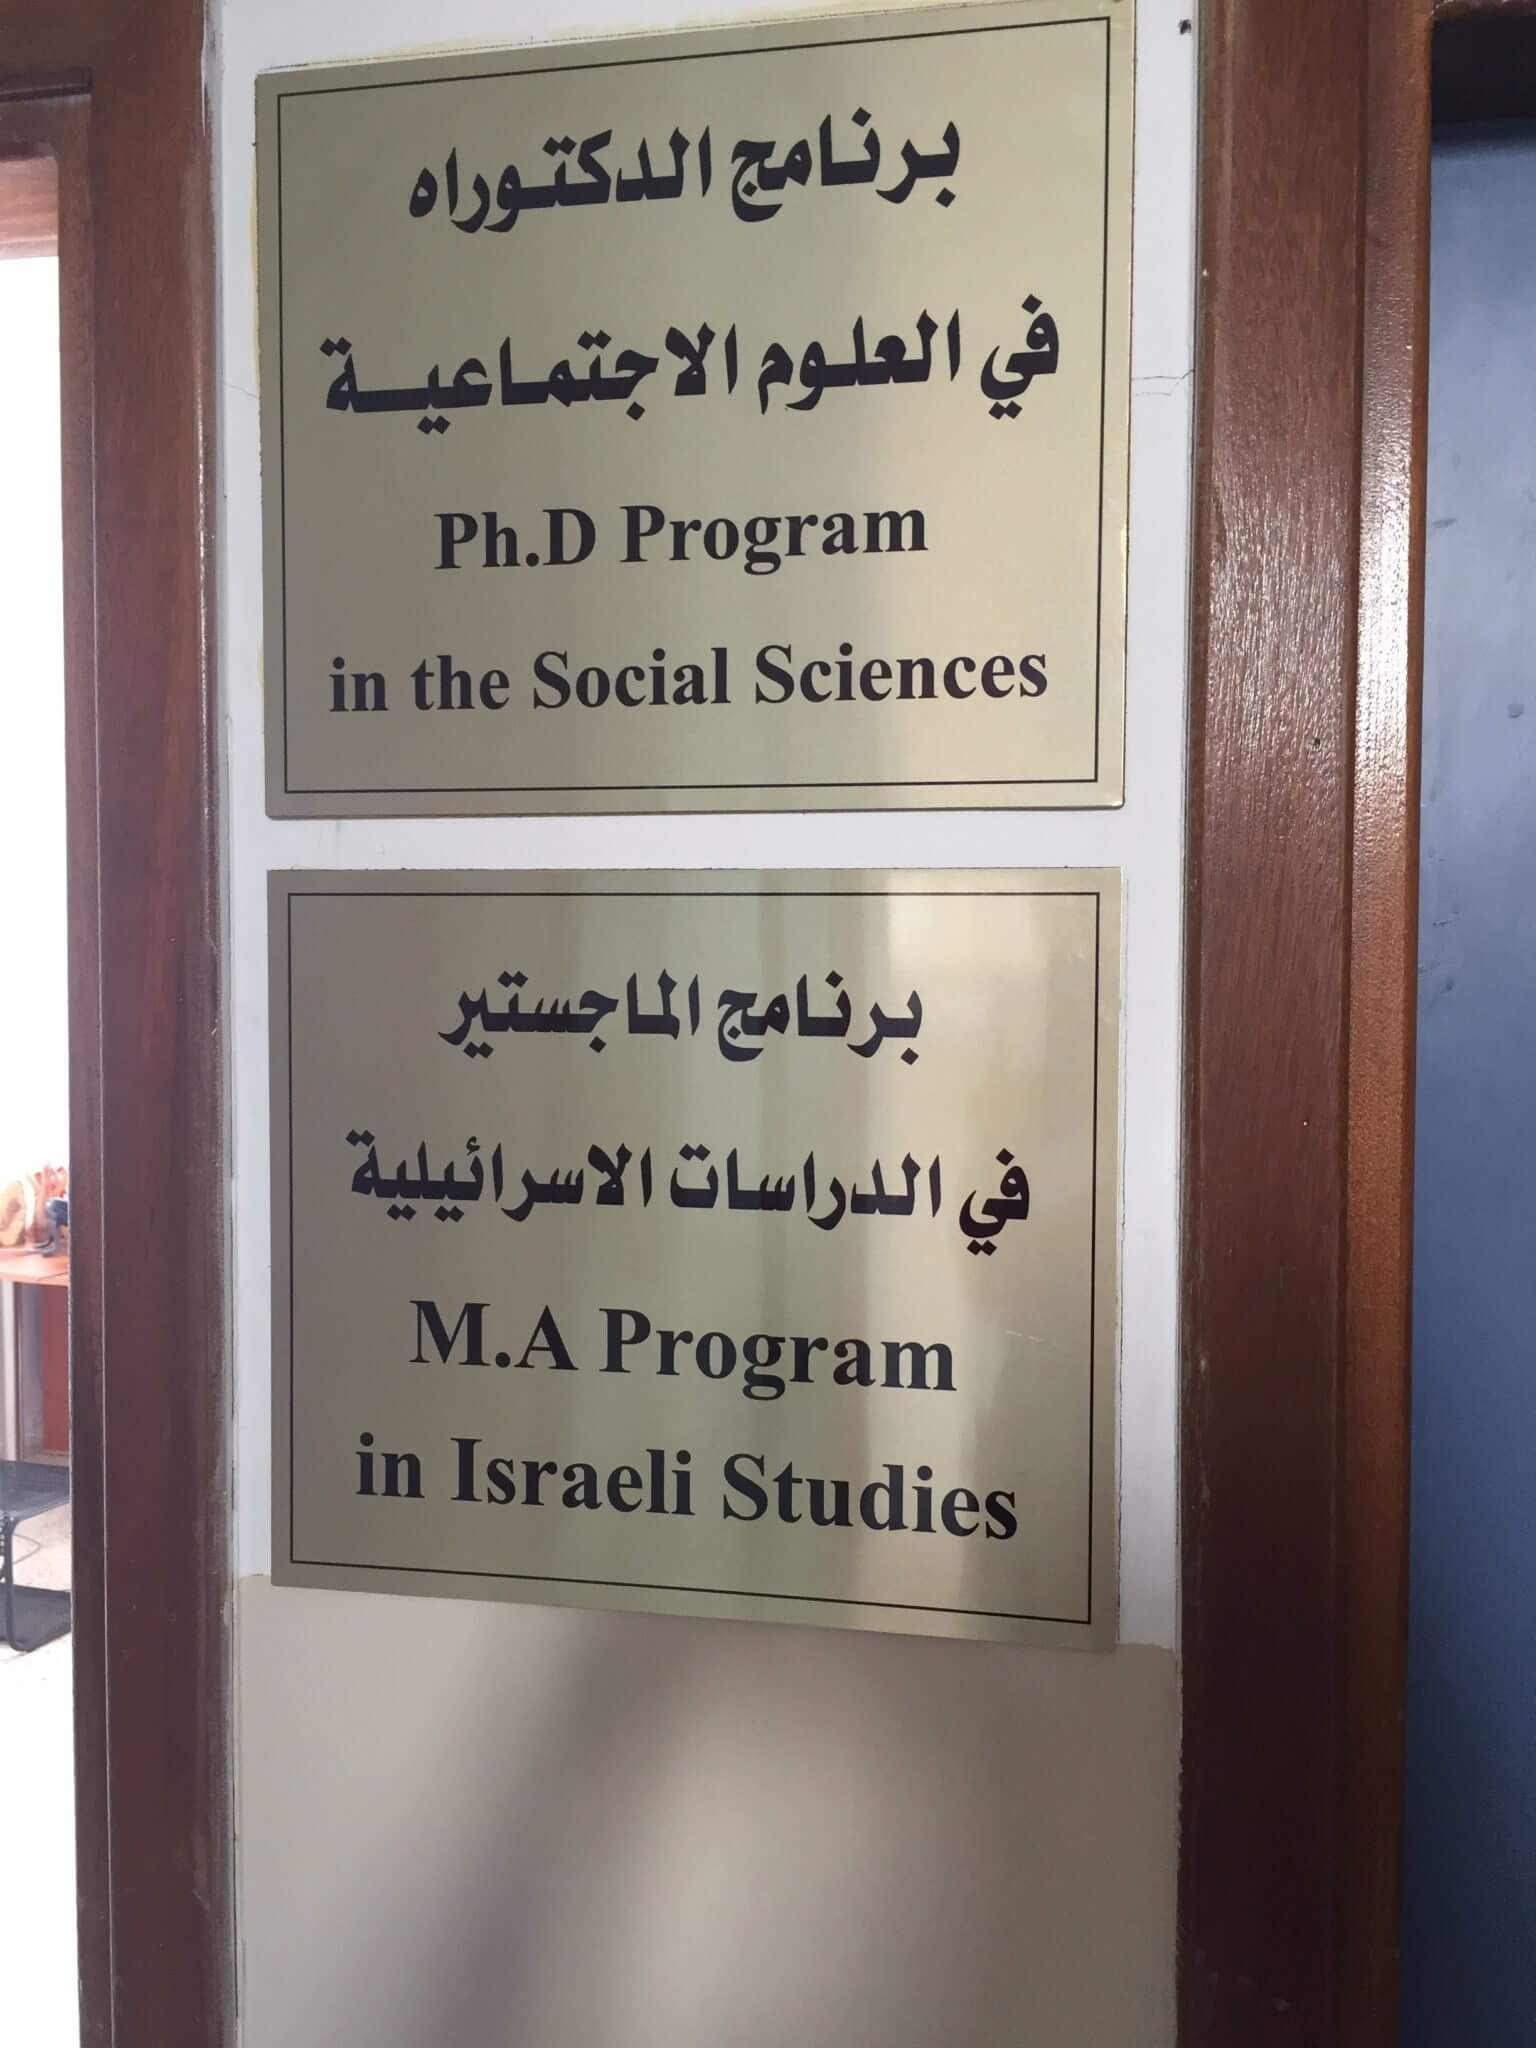 The Bir Zeit University Israel Studies program (Photo: Rebecca L. Stein)